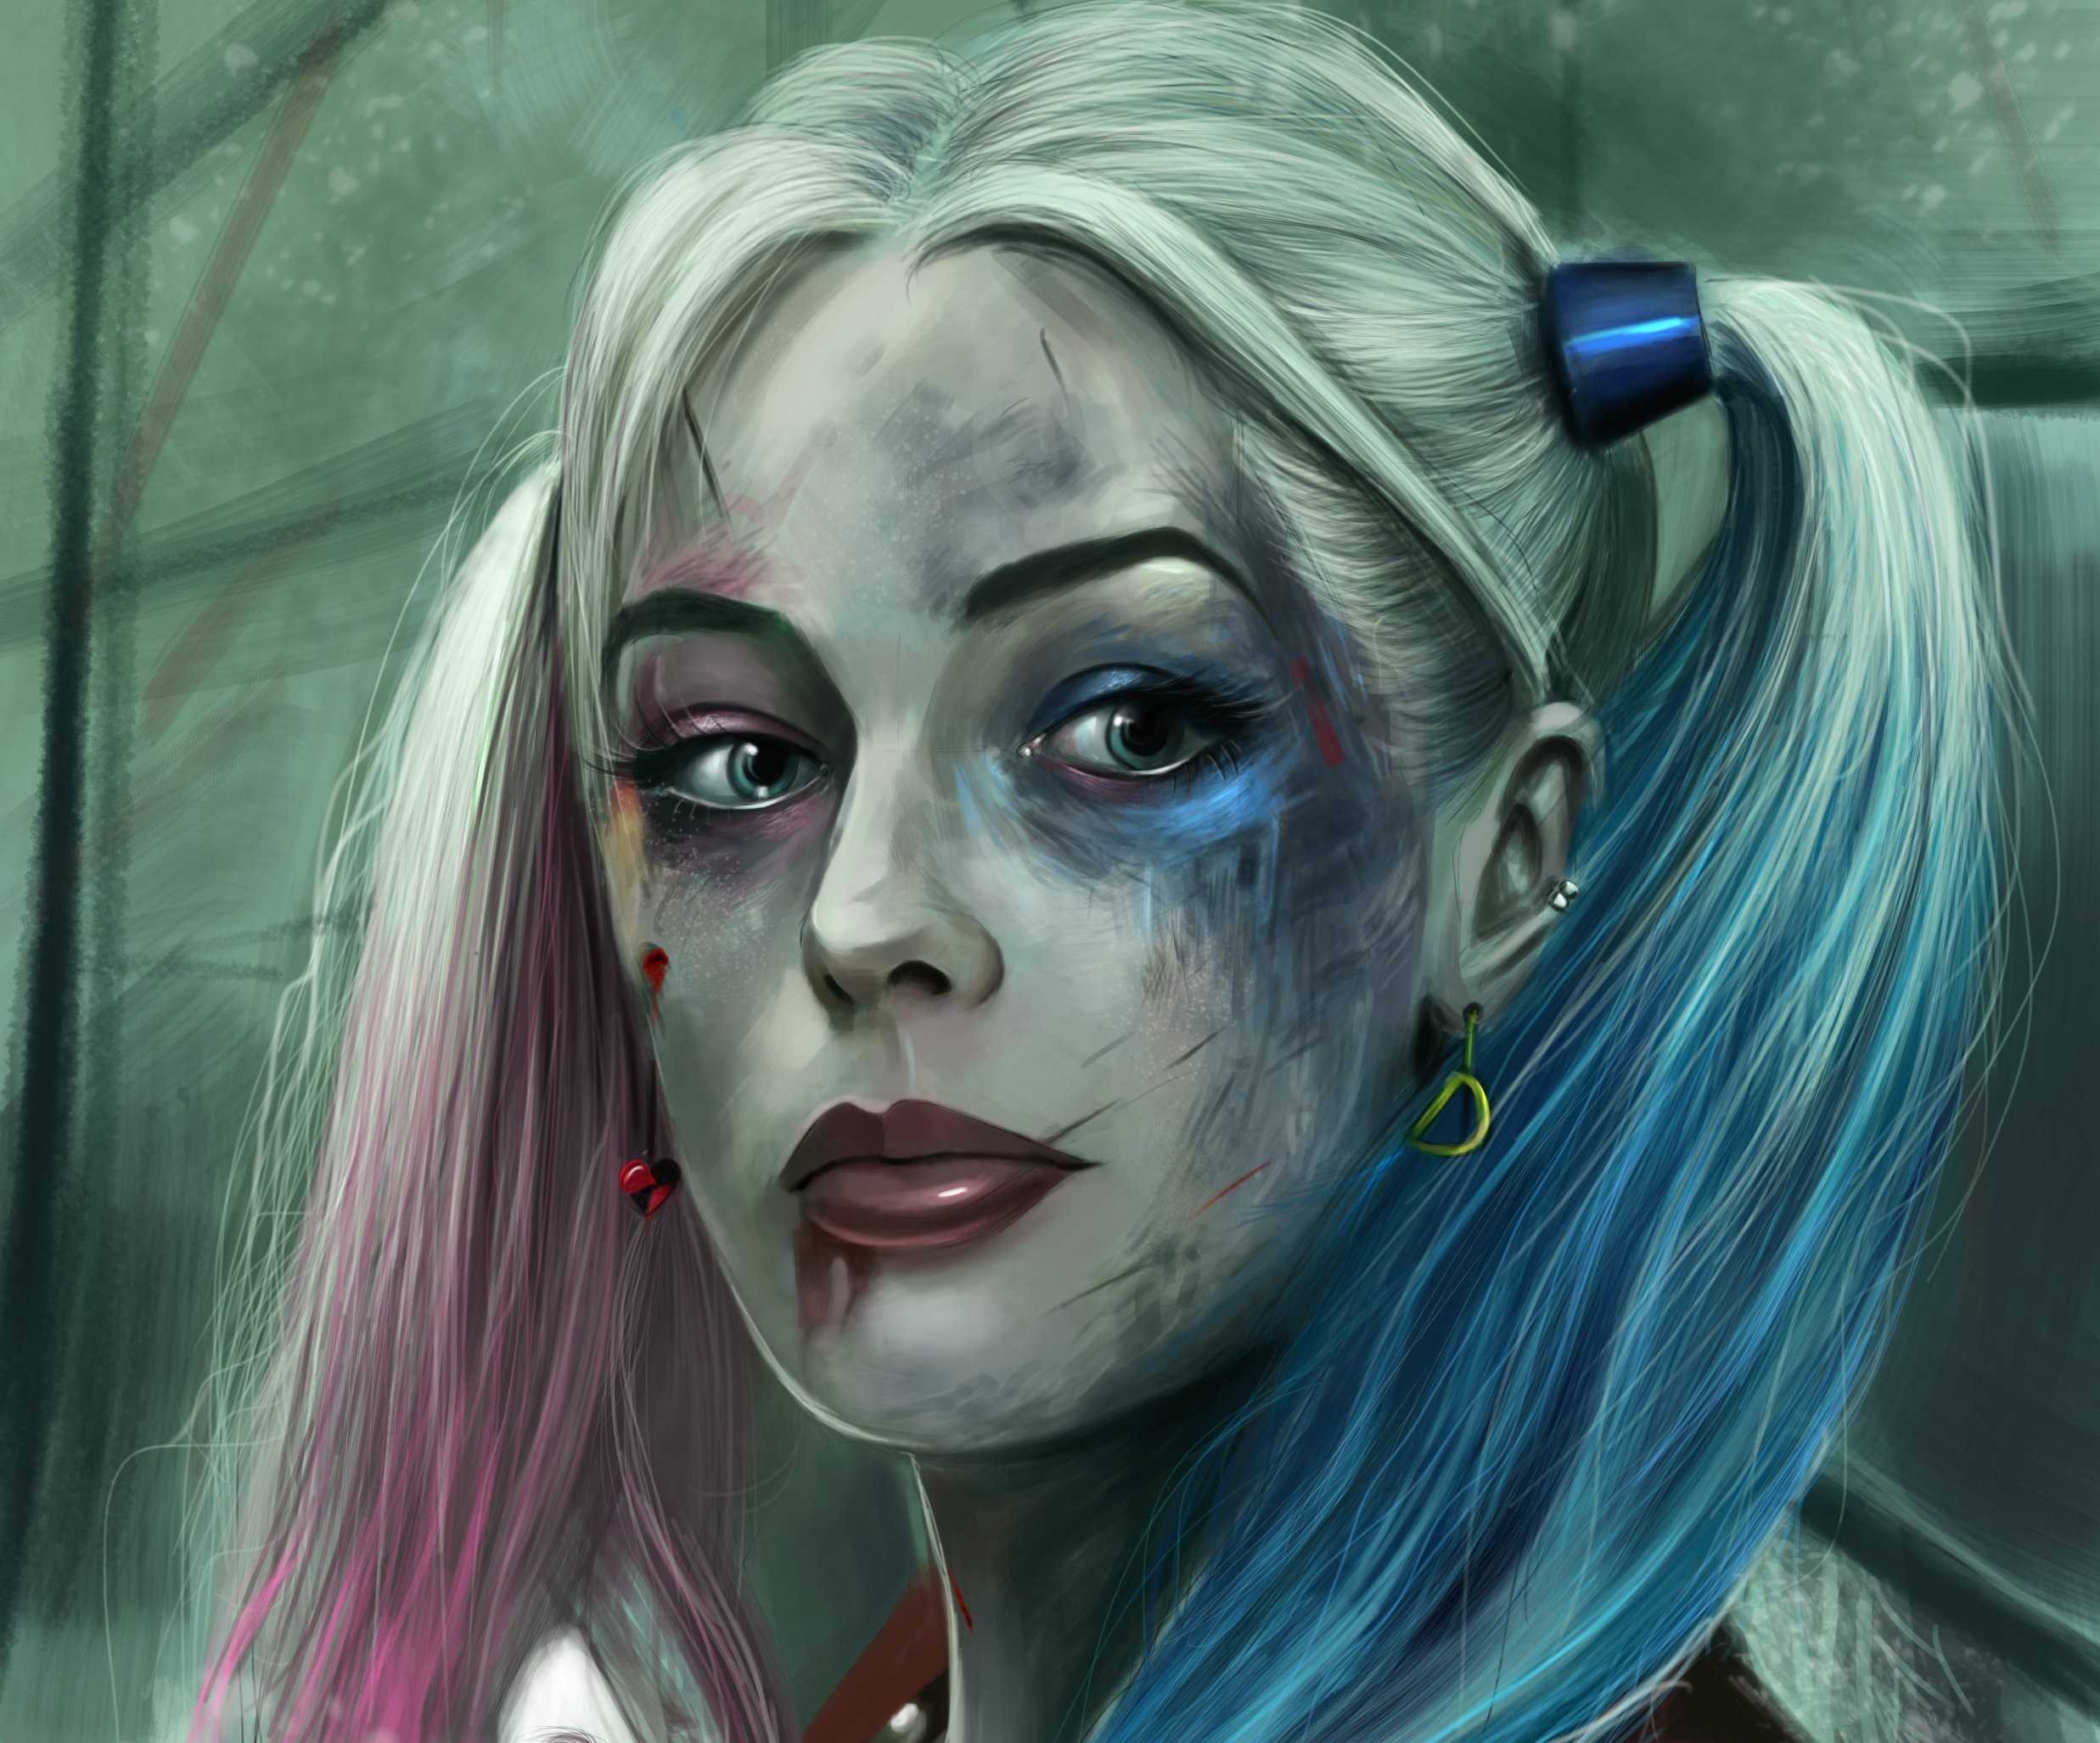 2474x2054 Harley Quinn In Suicide Squad 2048x1152 Resolution